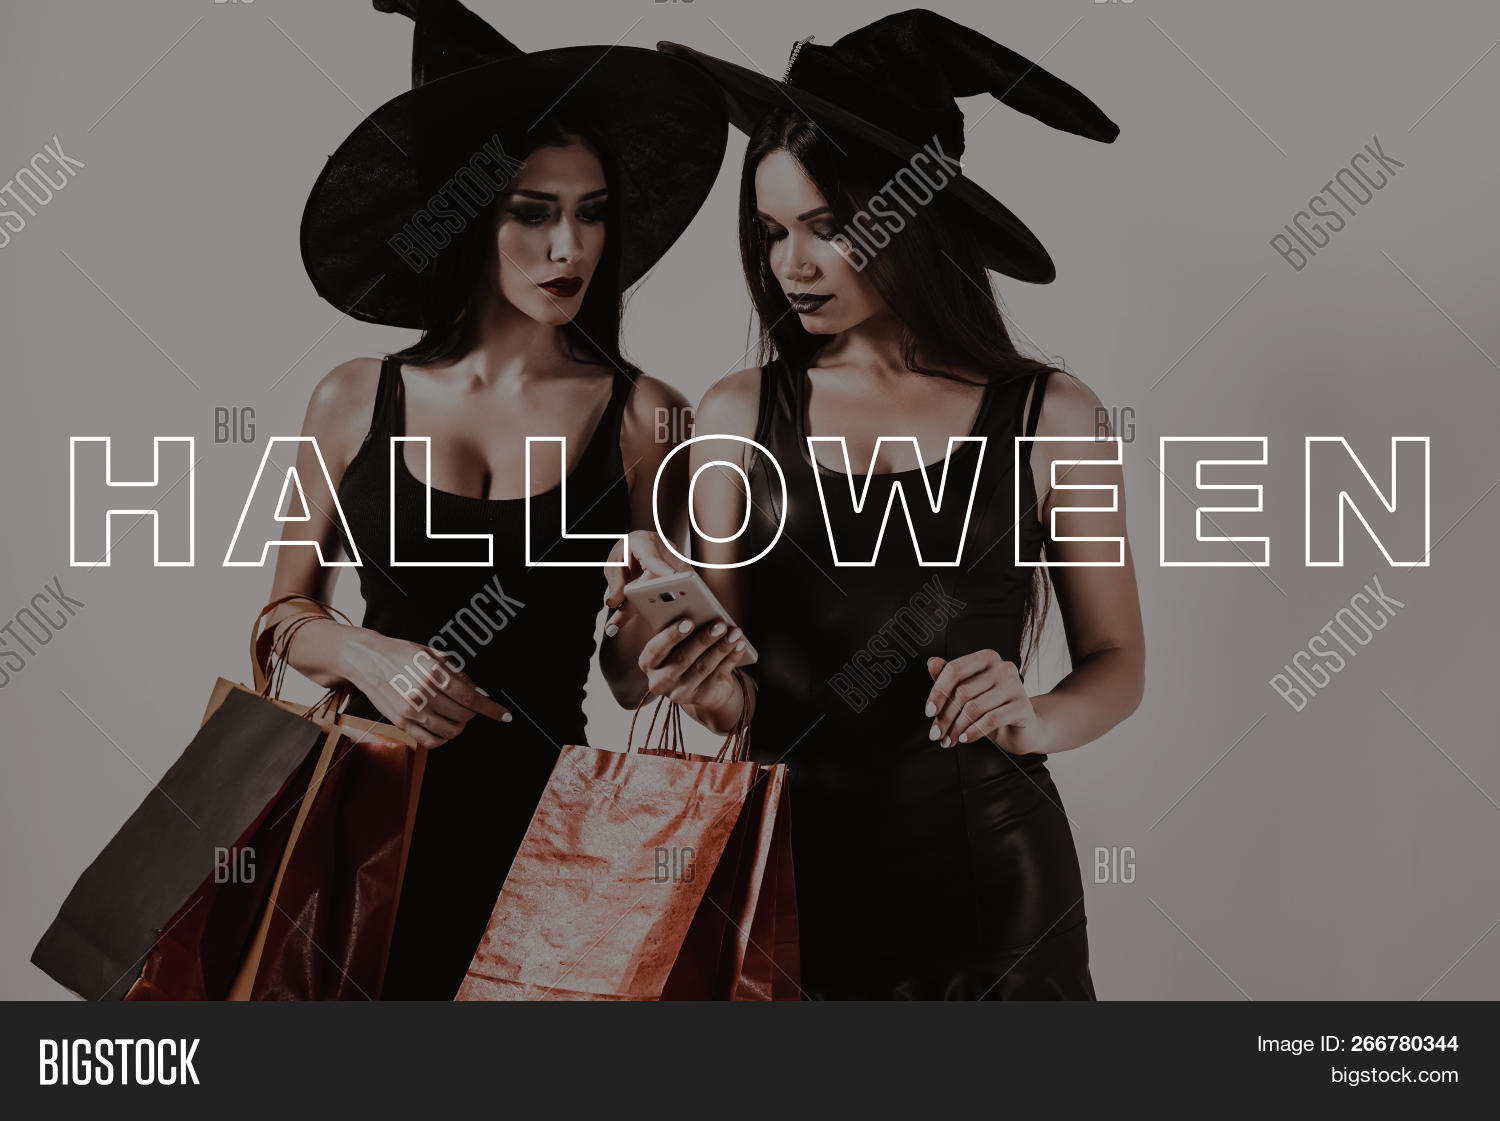 Halloween Party Packages.Woman Visit Halloween Image Photo Free Trial Bigstock